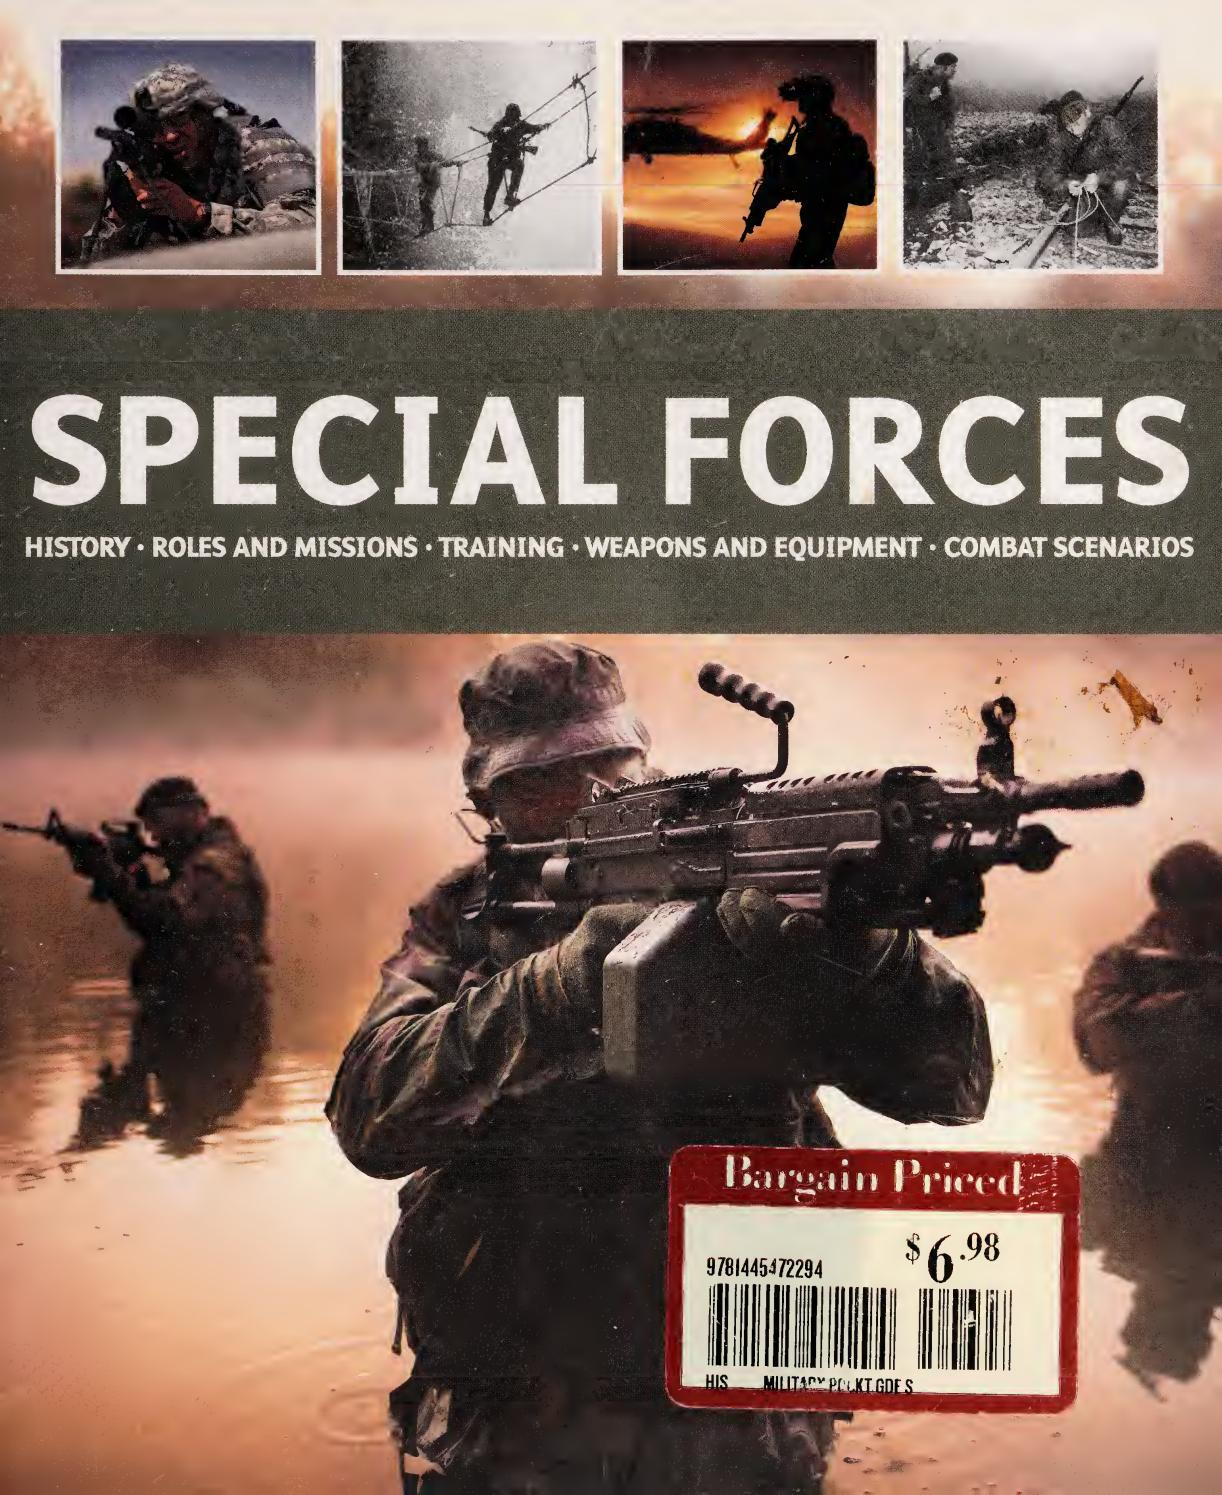 SPECIAL FORCES  History, roles and missions, training